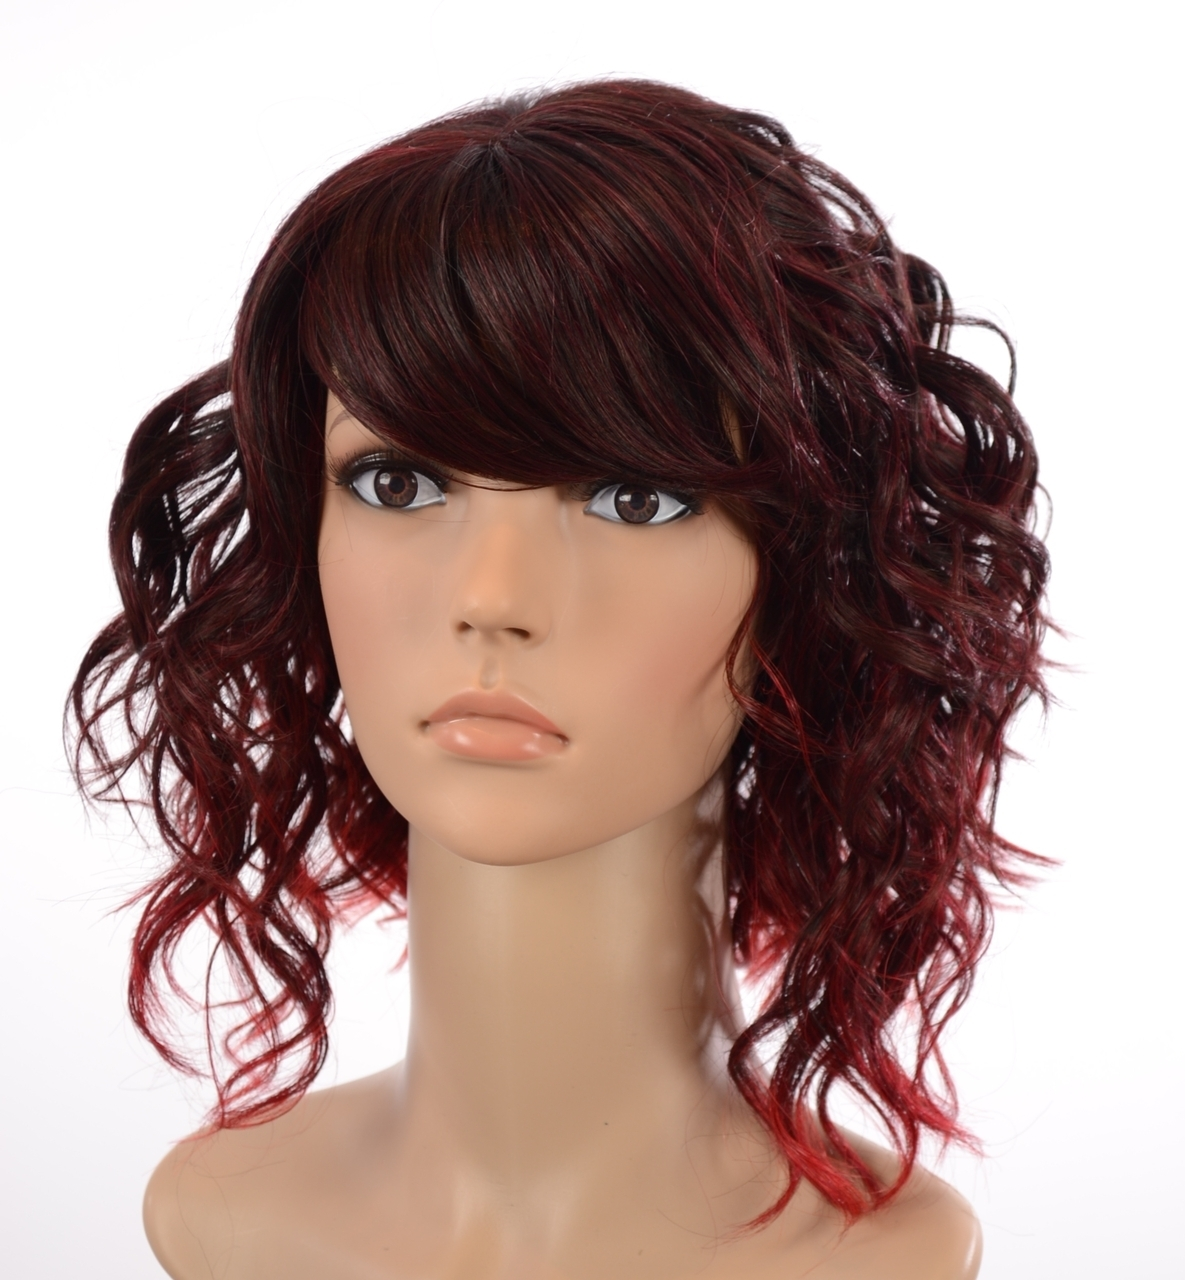 inverted-bob-curl-lace-front-wig008-01701.1386798580.1280.1280.jpg